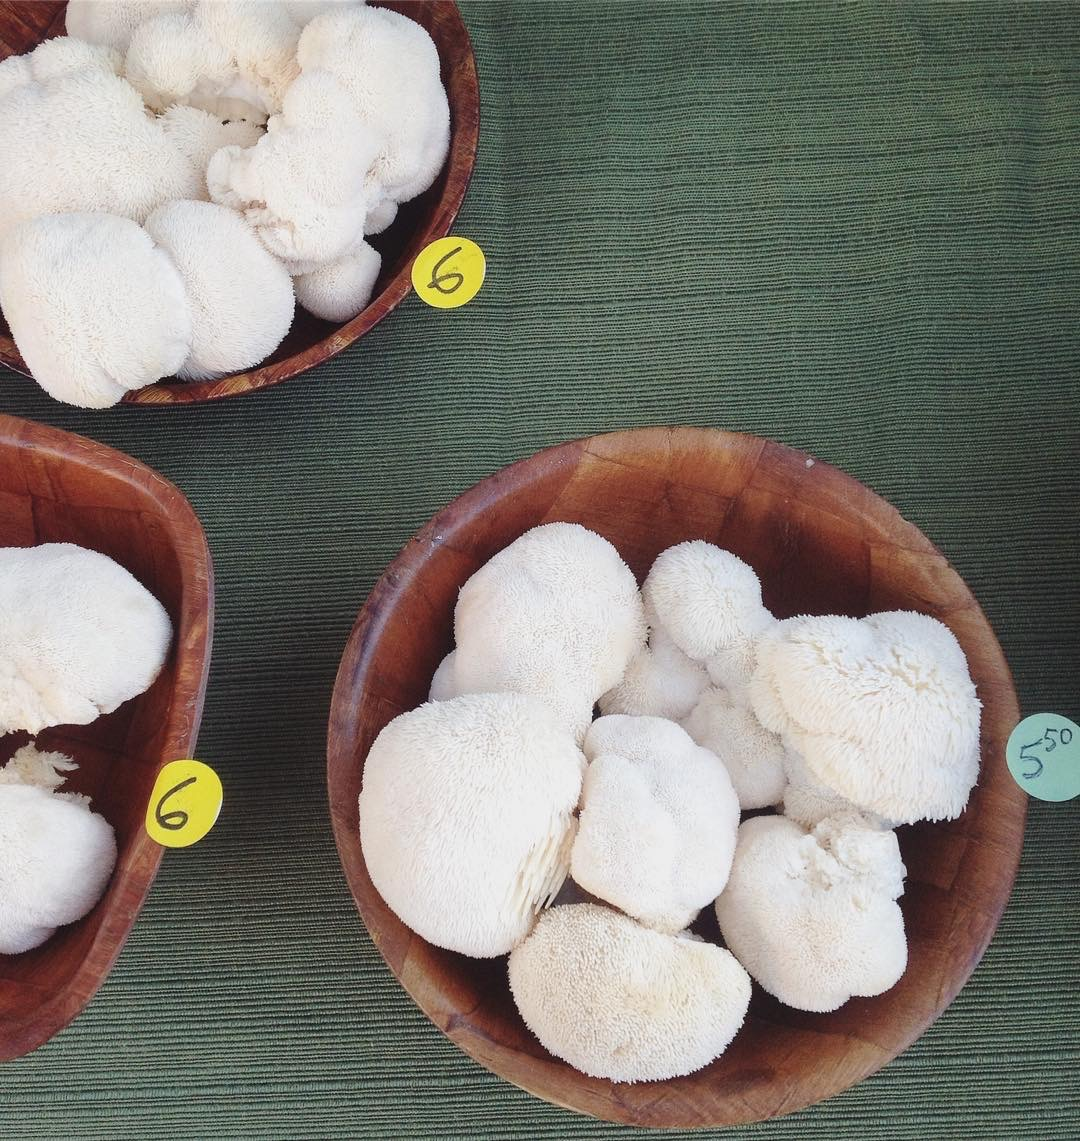 Try other varieties of mushrooms in this recipe, like these organic puffballs.